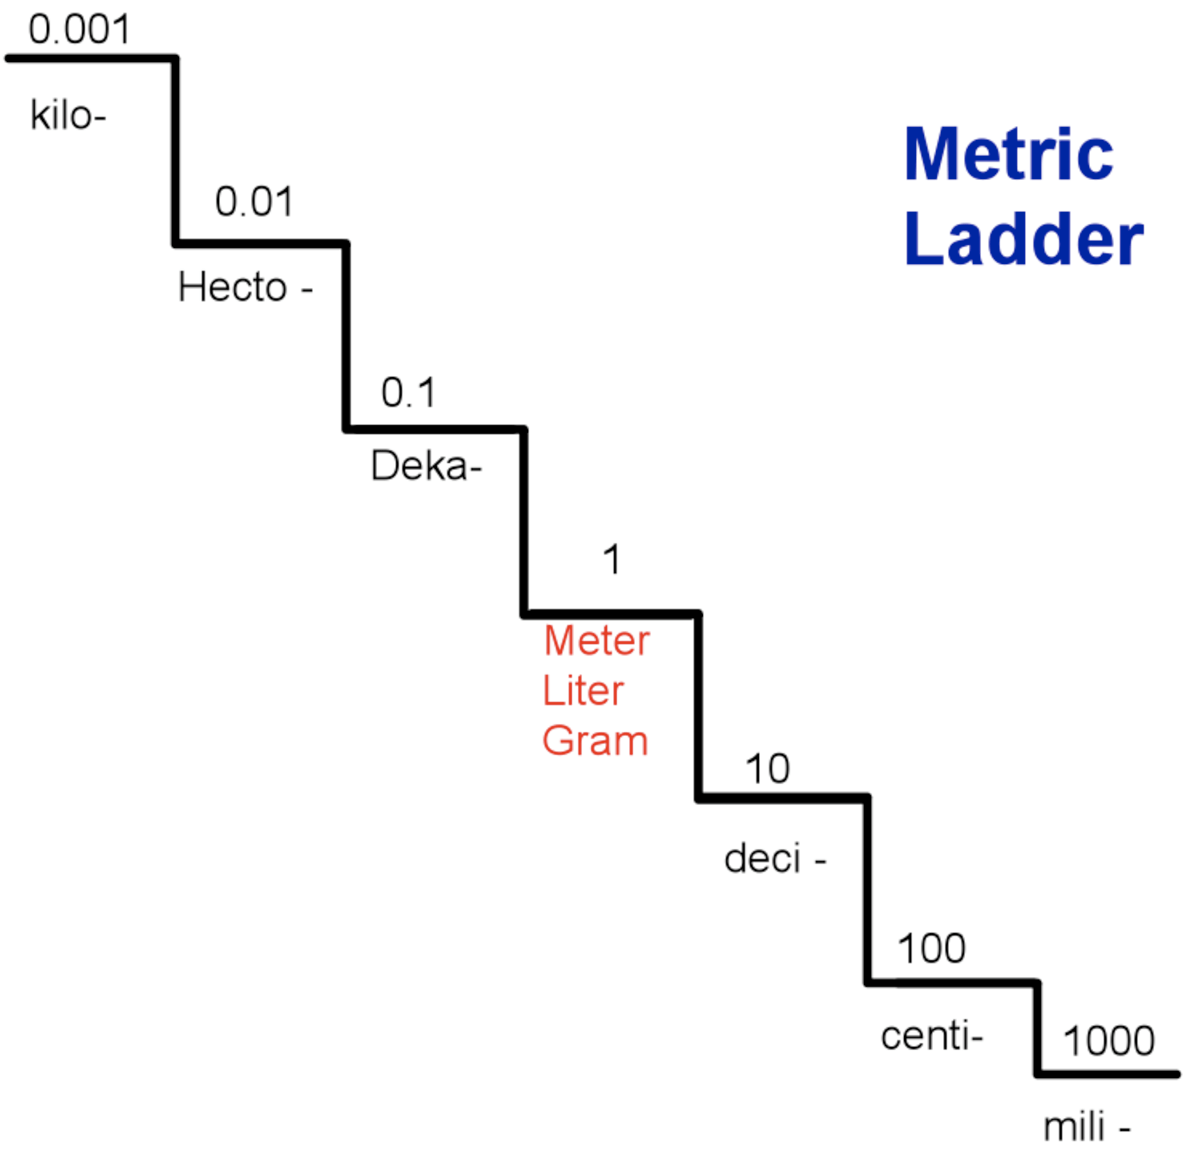 hight resolution of converting within the metric system using the metric staircase hubpages